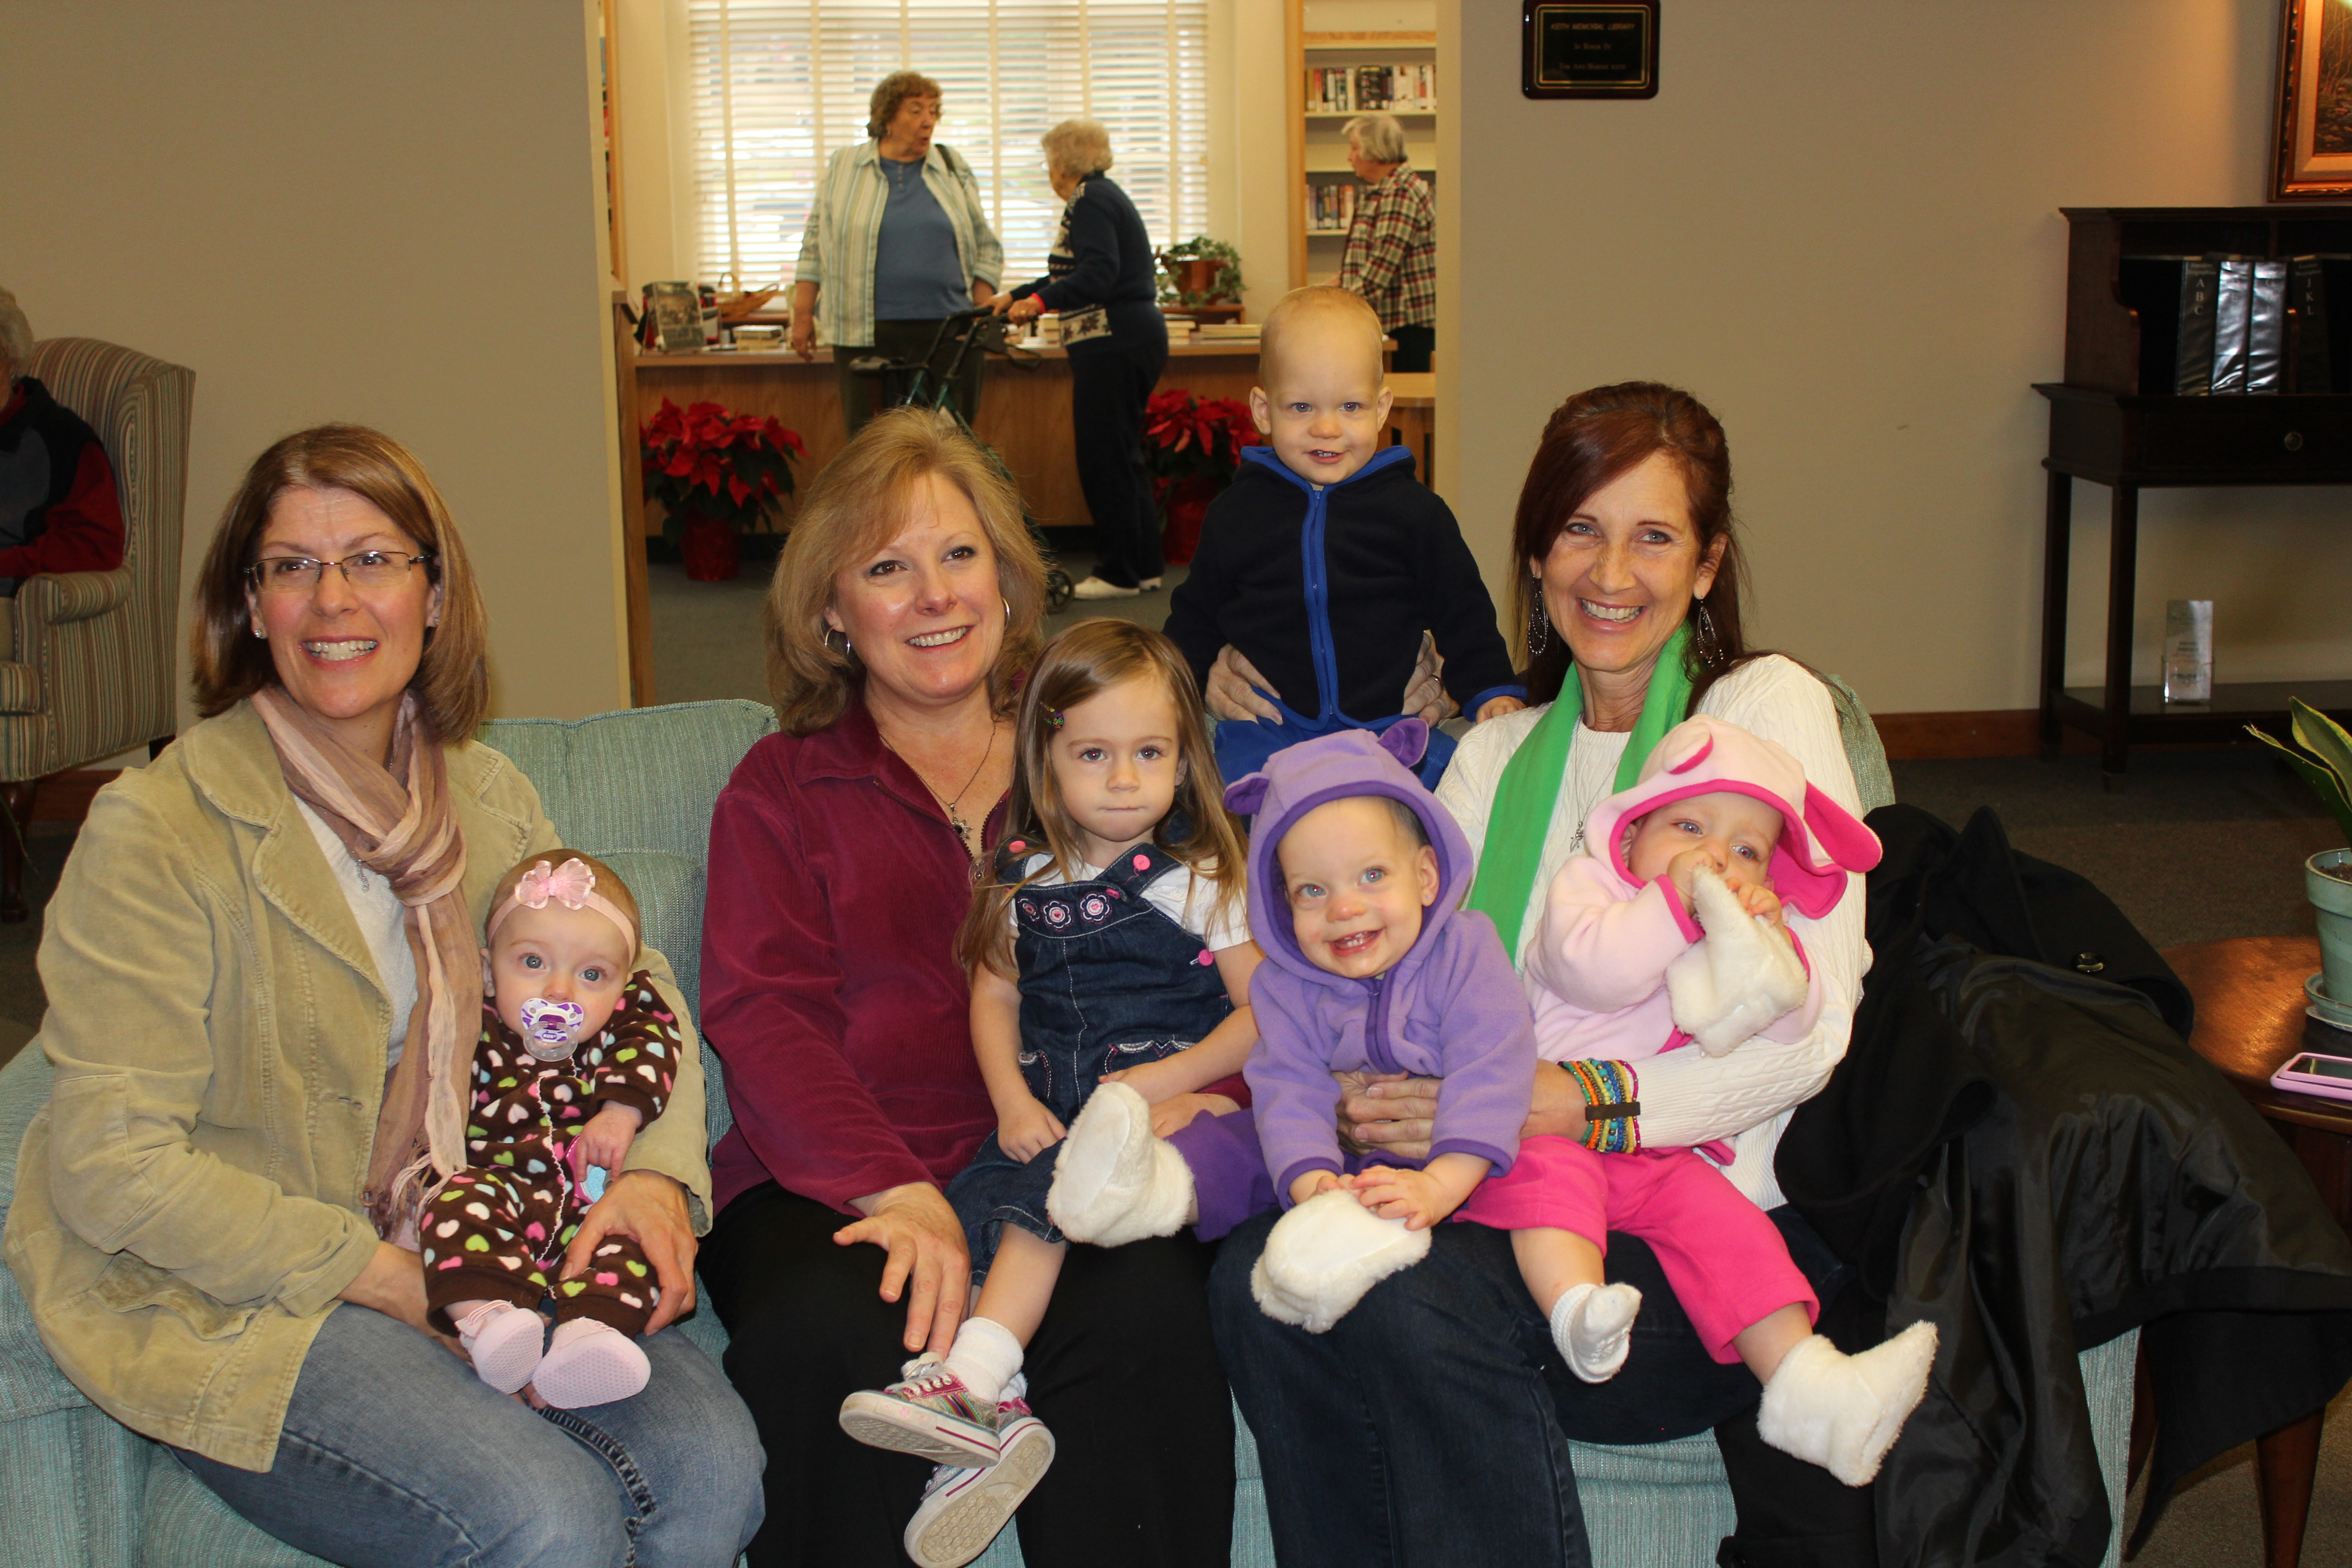 My Aunt List, Aunt Charlene and mom - with all their grandbabies!